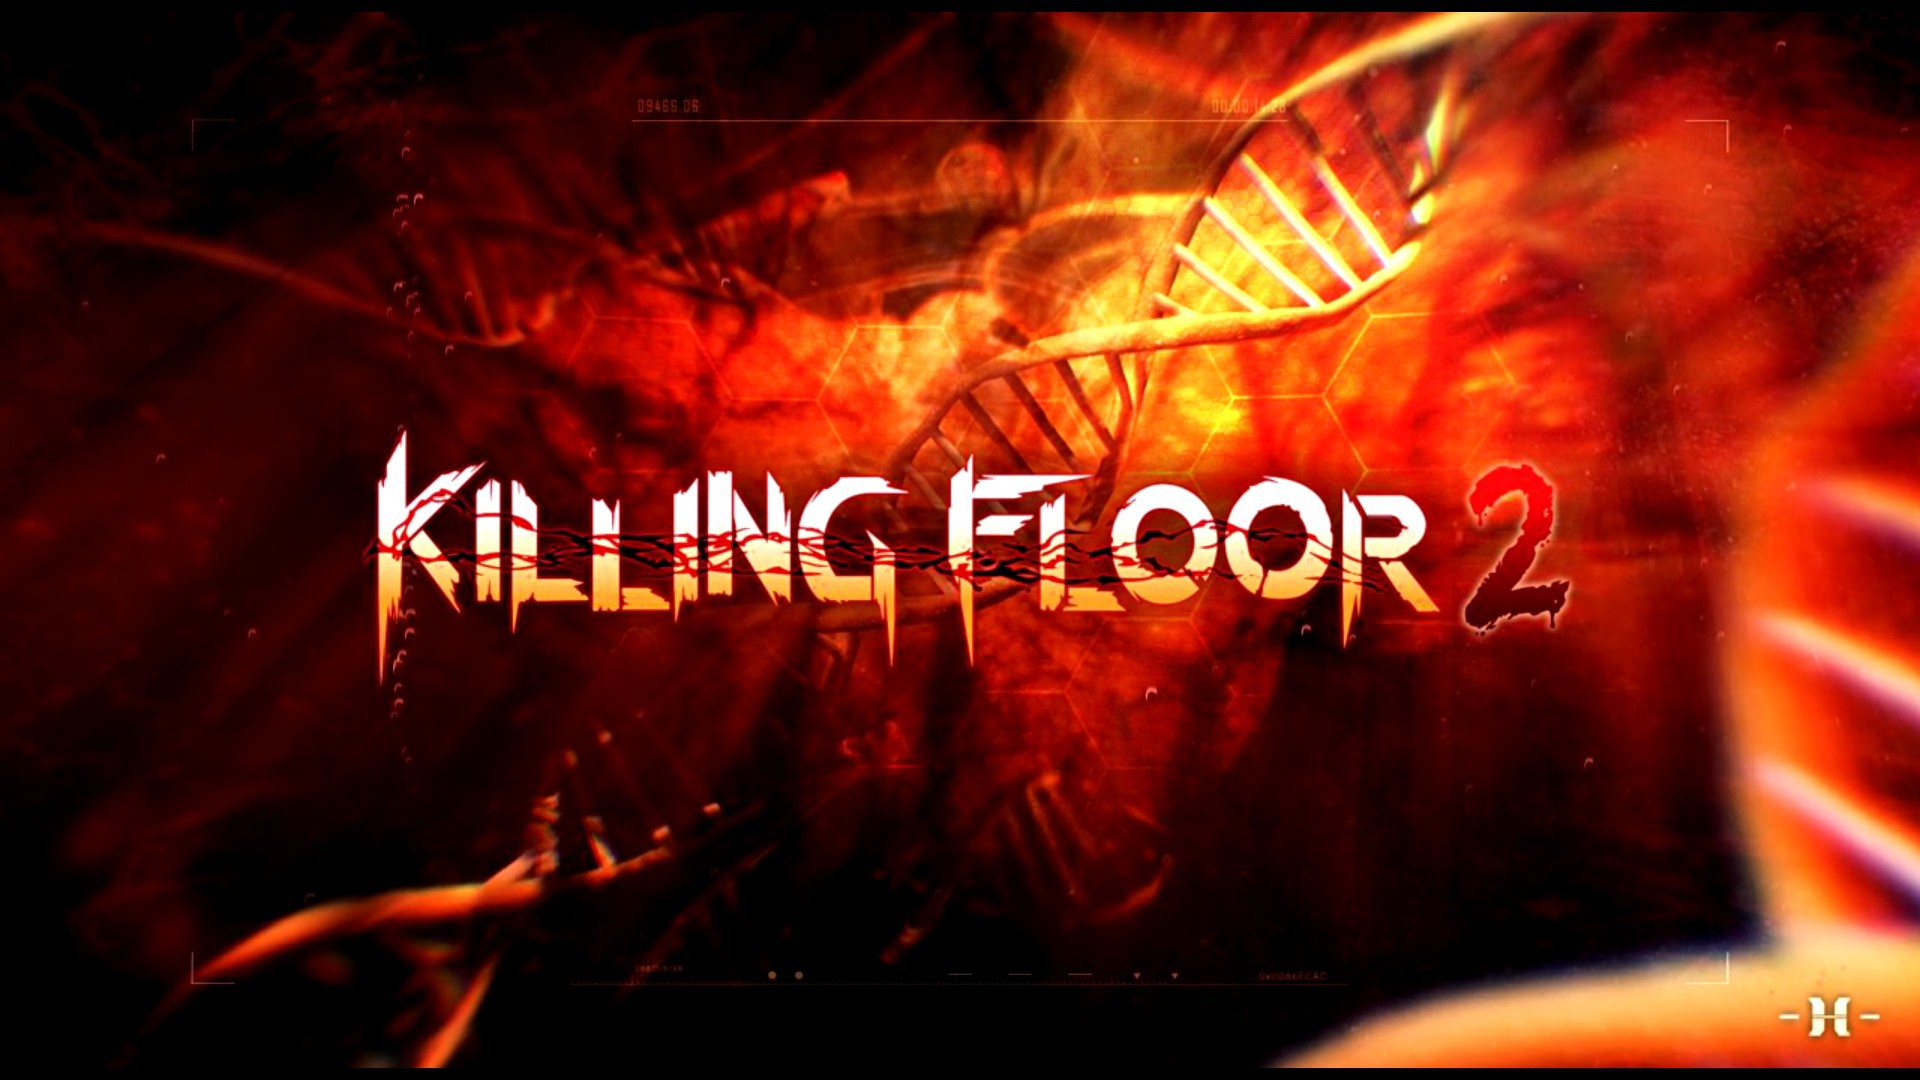 Killing floor 2 wallpapers images photos pictures backgrounds for Floor 2 swordburst 2